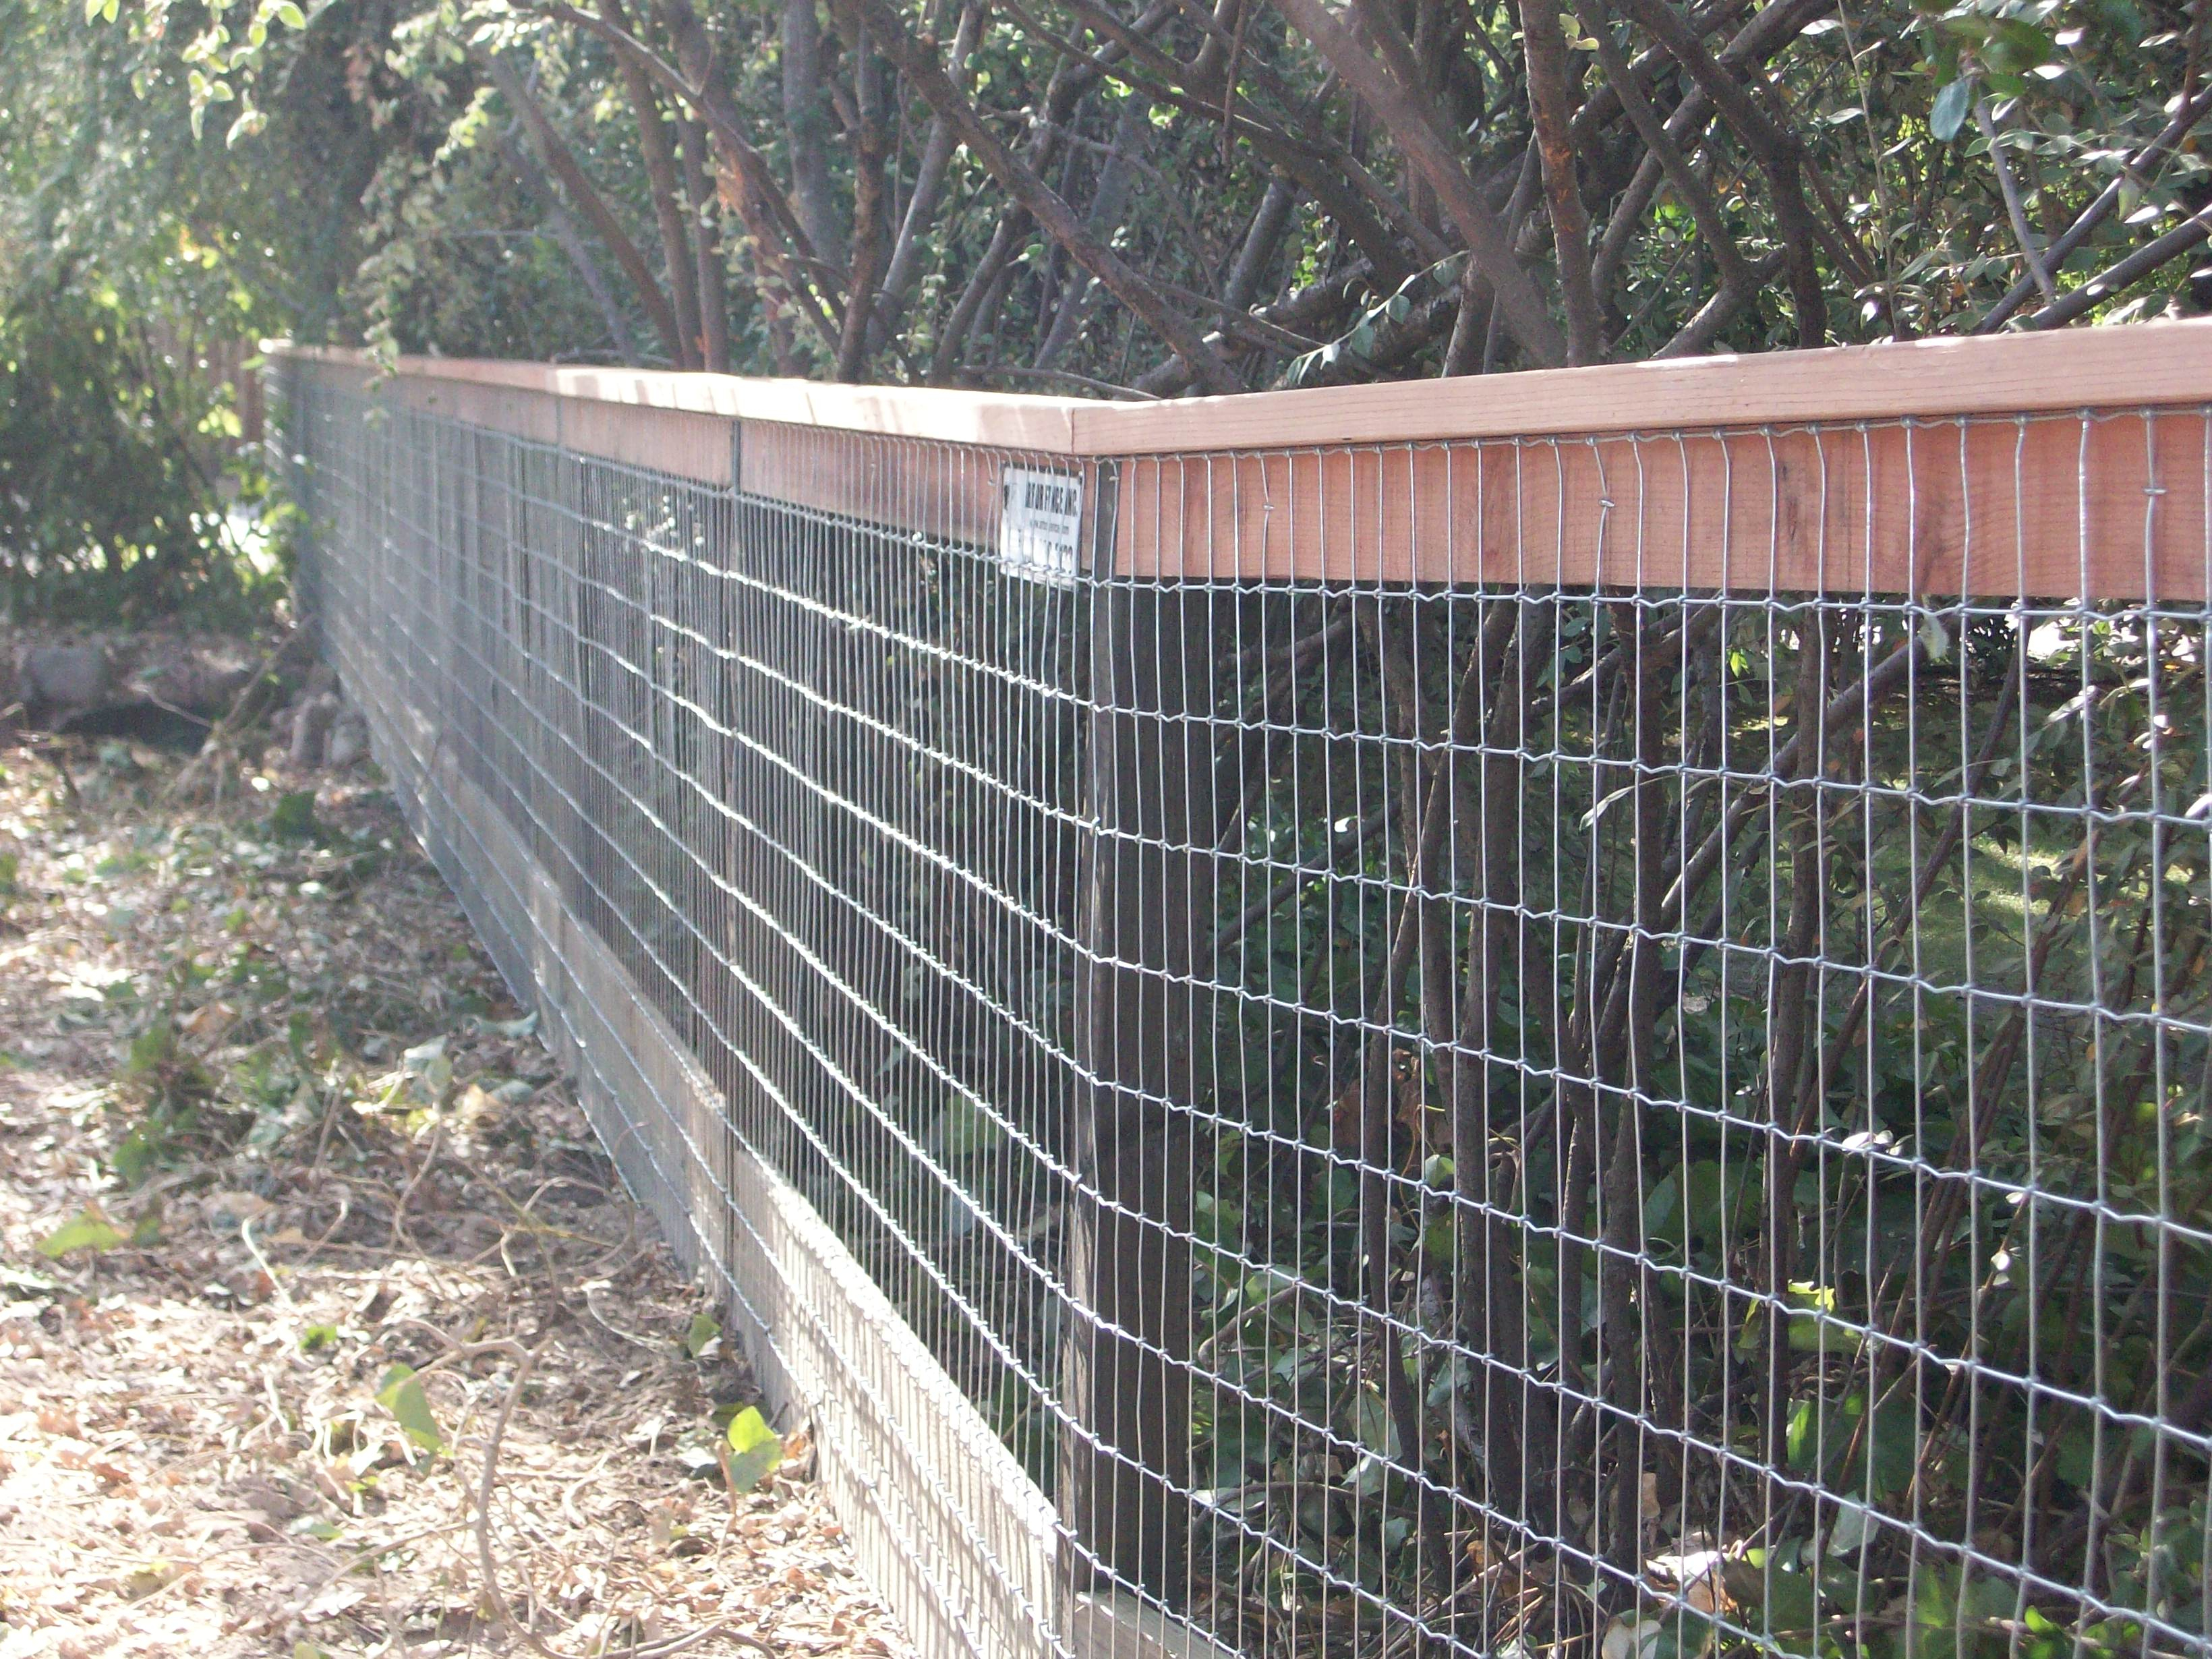 Fence Wire Fencing So Many Kinds Wonderful Electric Tape Fence I throughout size 3280 X 2460